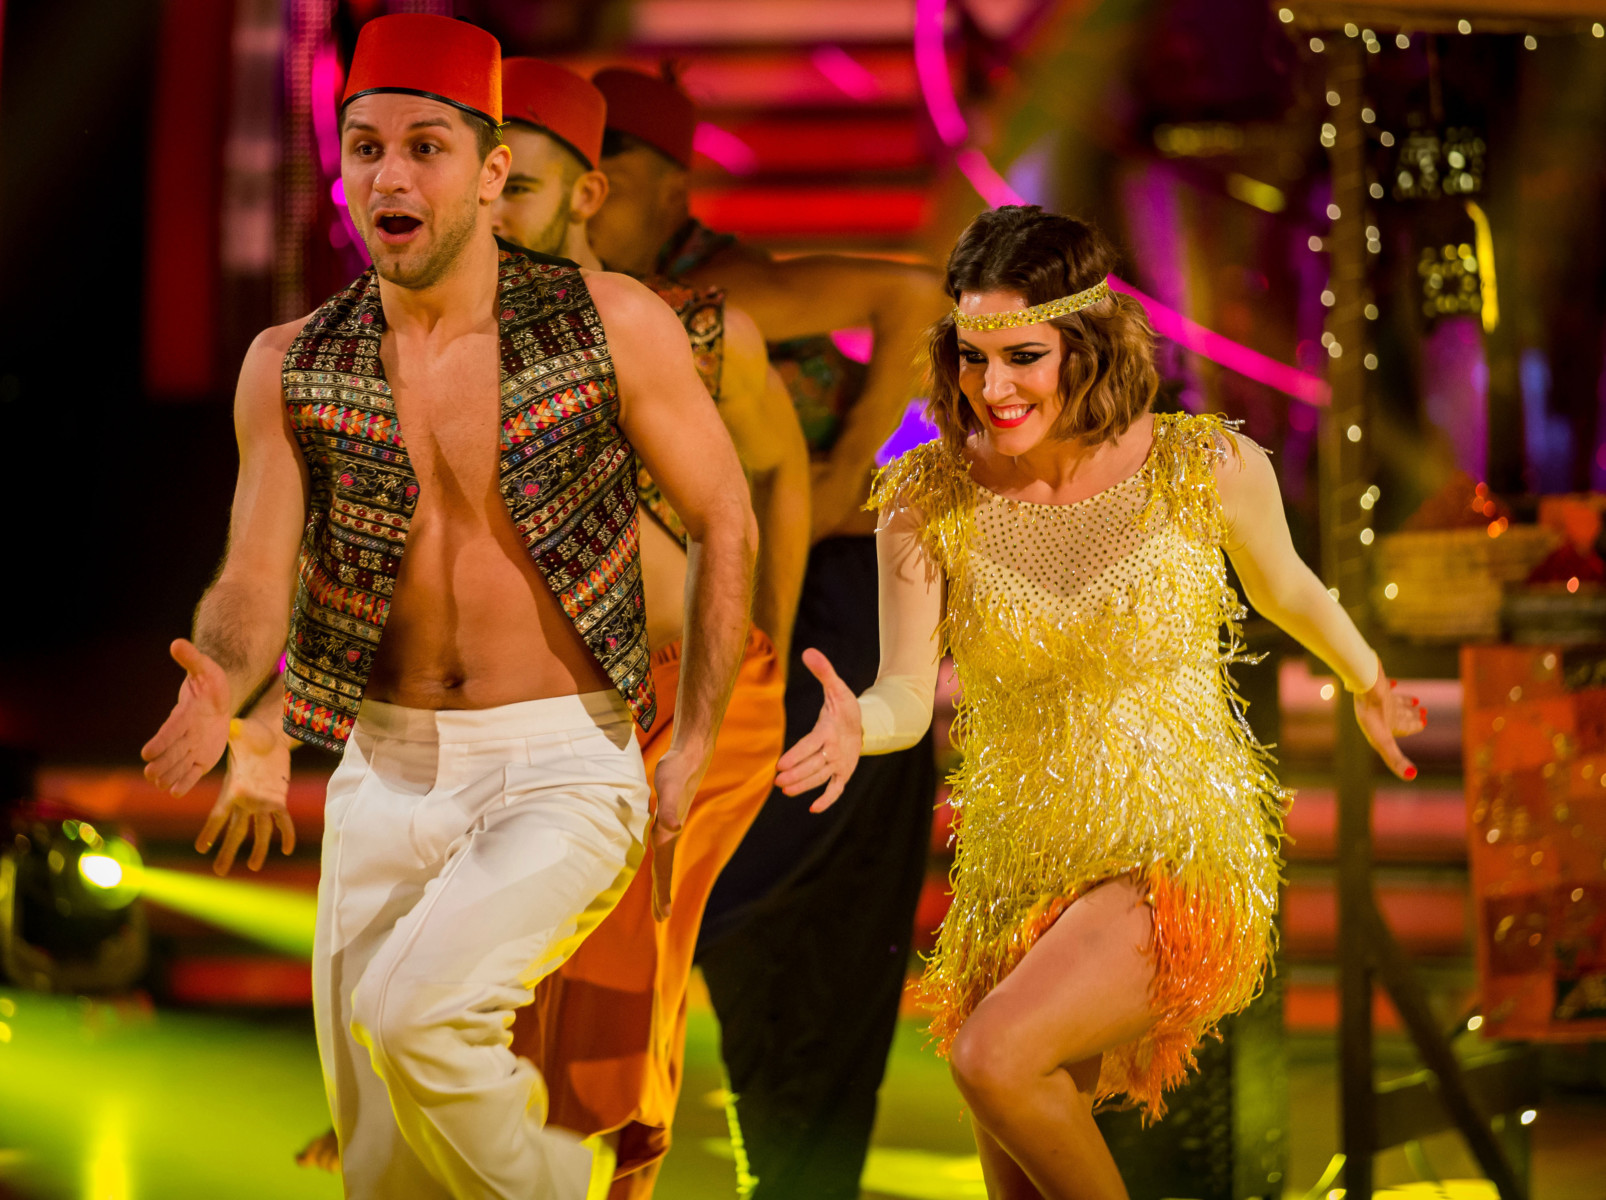 Caroline sank into a year-long depression only a day after winning Strictly Come Dancing with Pasha Kovalev